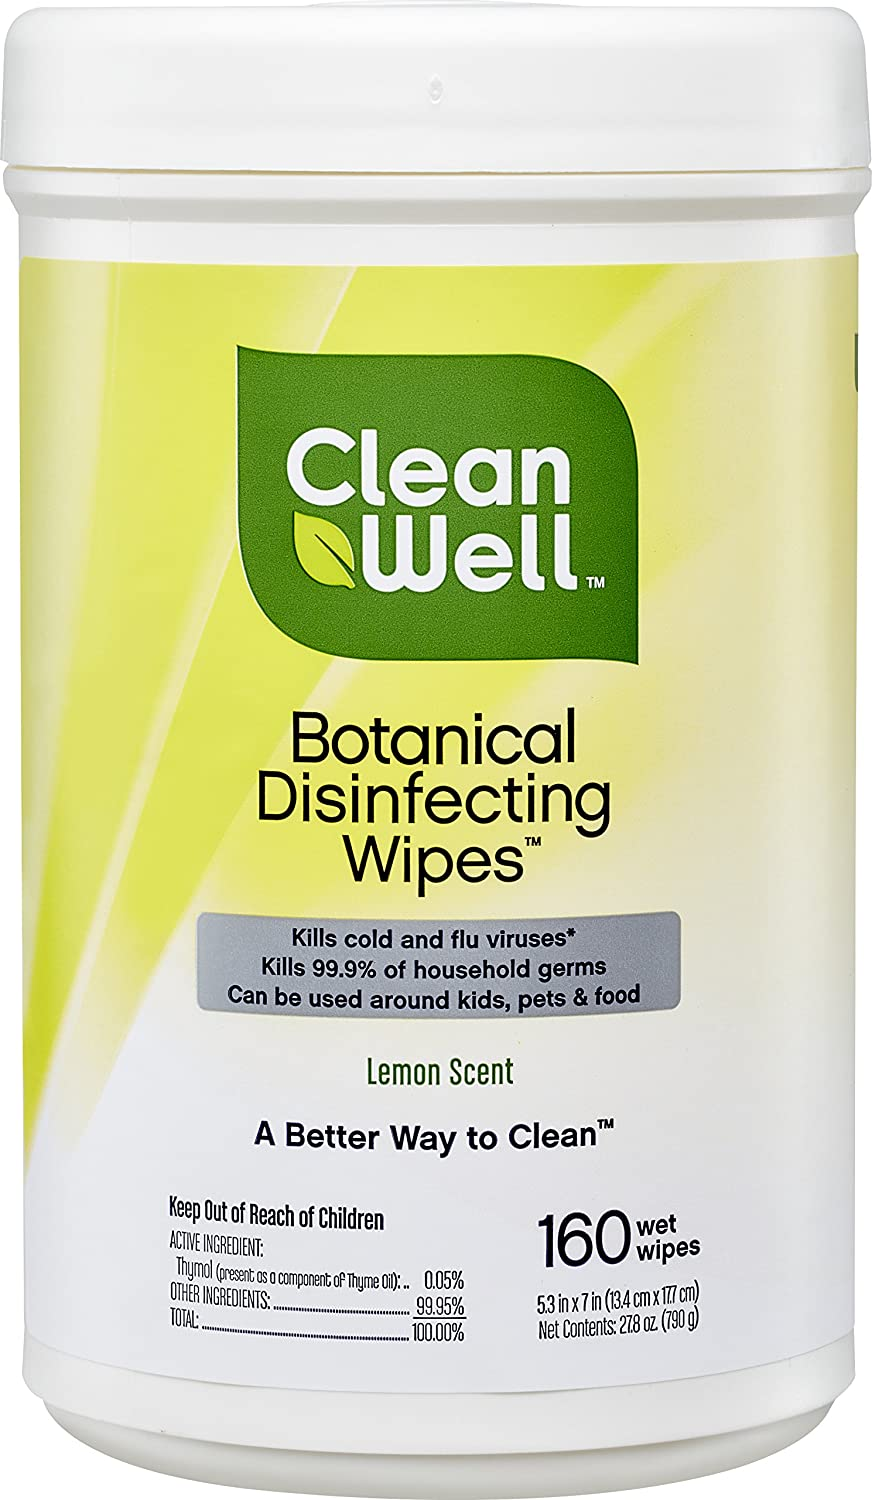 Cleanwell Botanical Disinfecting Wipes Lemon 160 Count 1 Pk Bleach Free Antibacterial Kid Pet Friendly Plant Based Nontoxic Cruelty Free